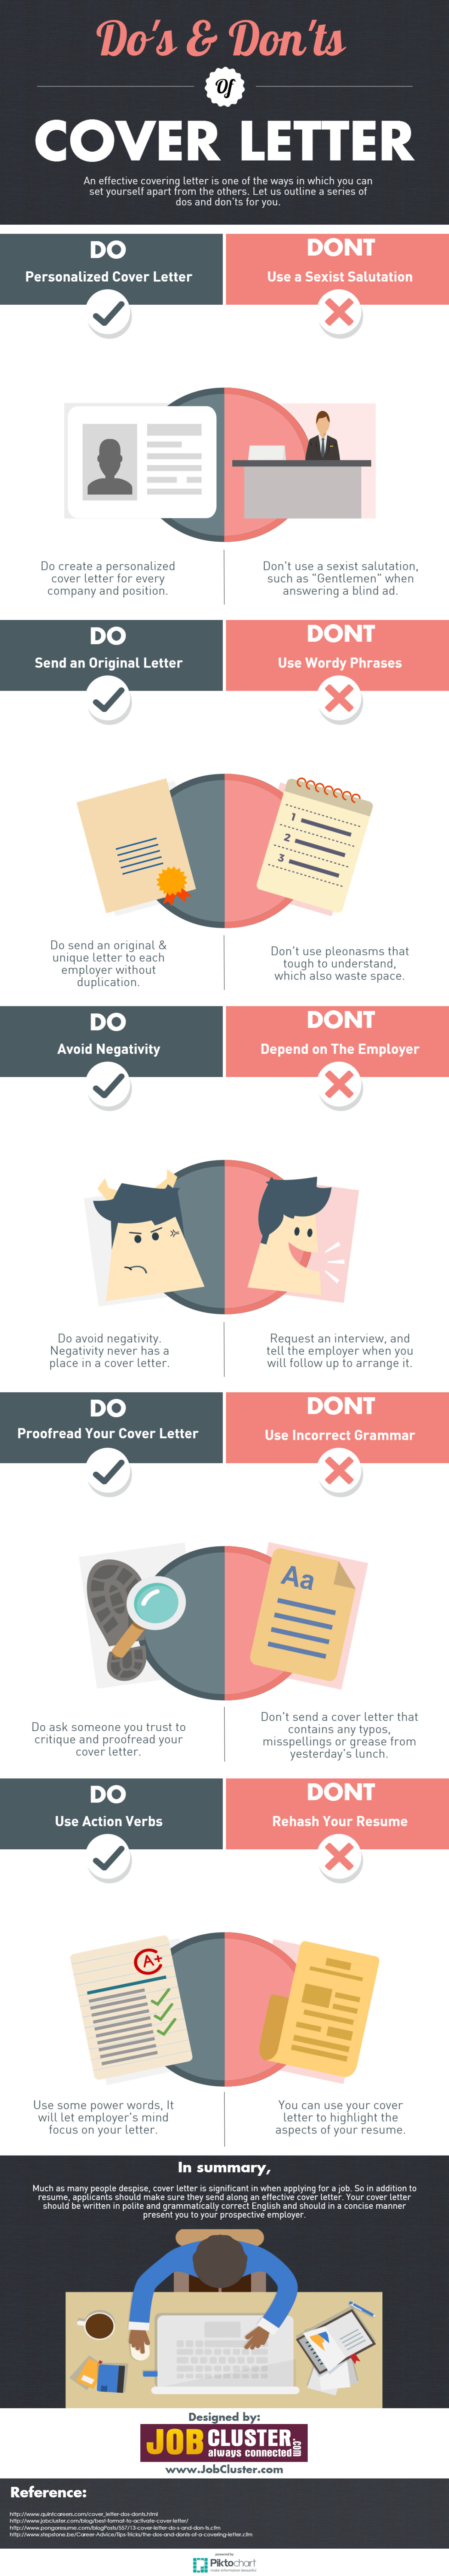 cover letter do s and don ts for job seekers infographic